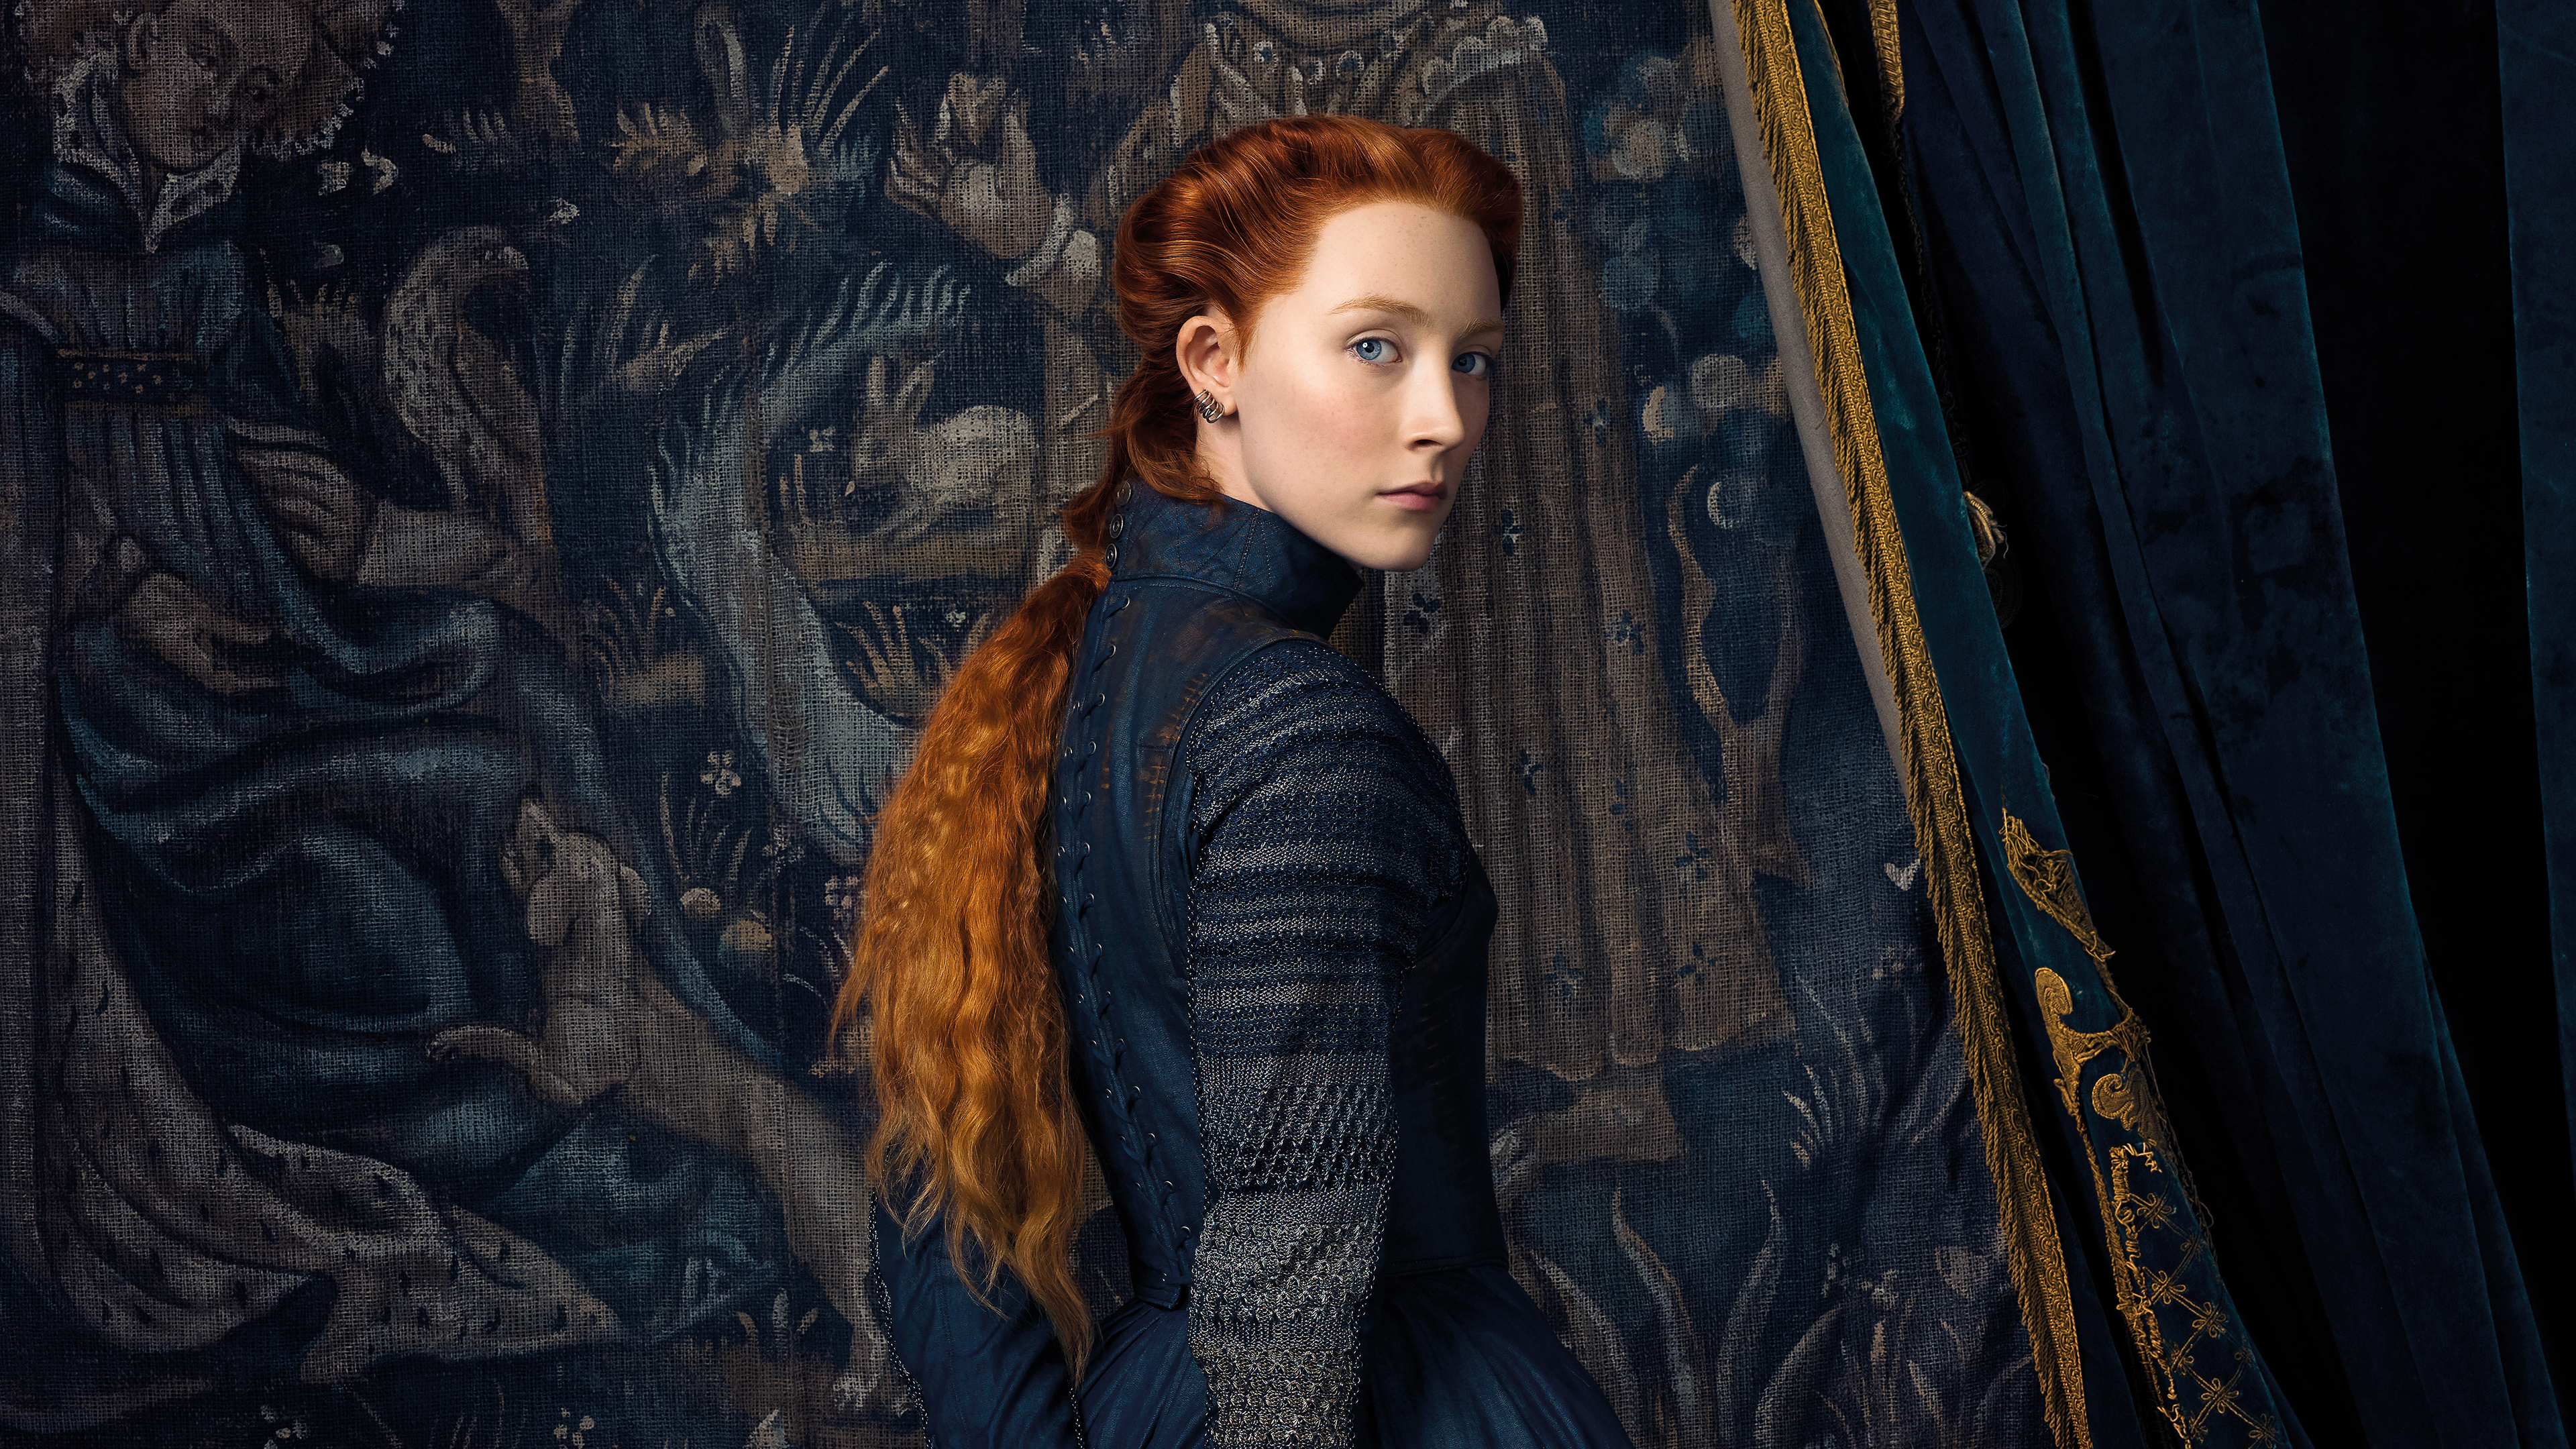 saoirse ronan as mary in mary queen of scots movie 5k 1539979687 - Saoirse Ronan As Mary In Mary Queen Of Scots Movie 5k - saoirse ronan wallpapers, movies wallpapers, mary queen of scots wallpapers, hd-wallpapers, 5k wallpapers, 4k-wallpapers, 2018-movies-wallpapers